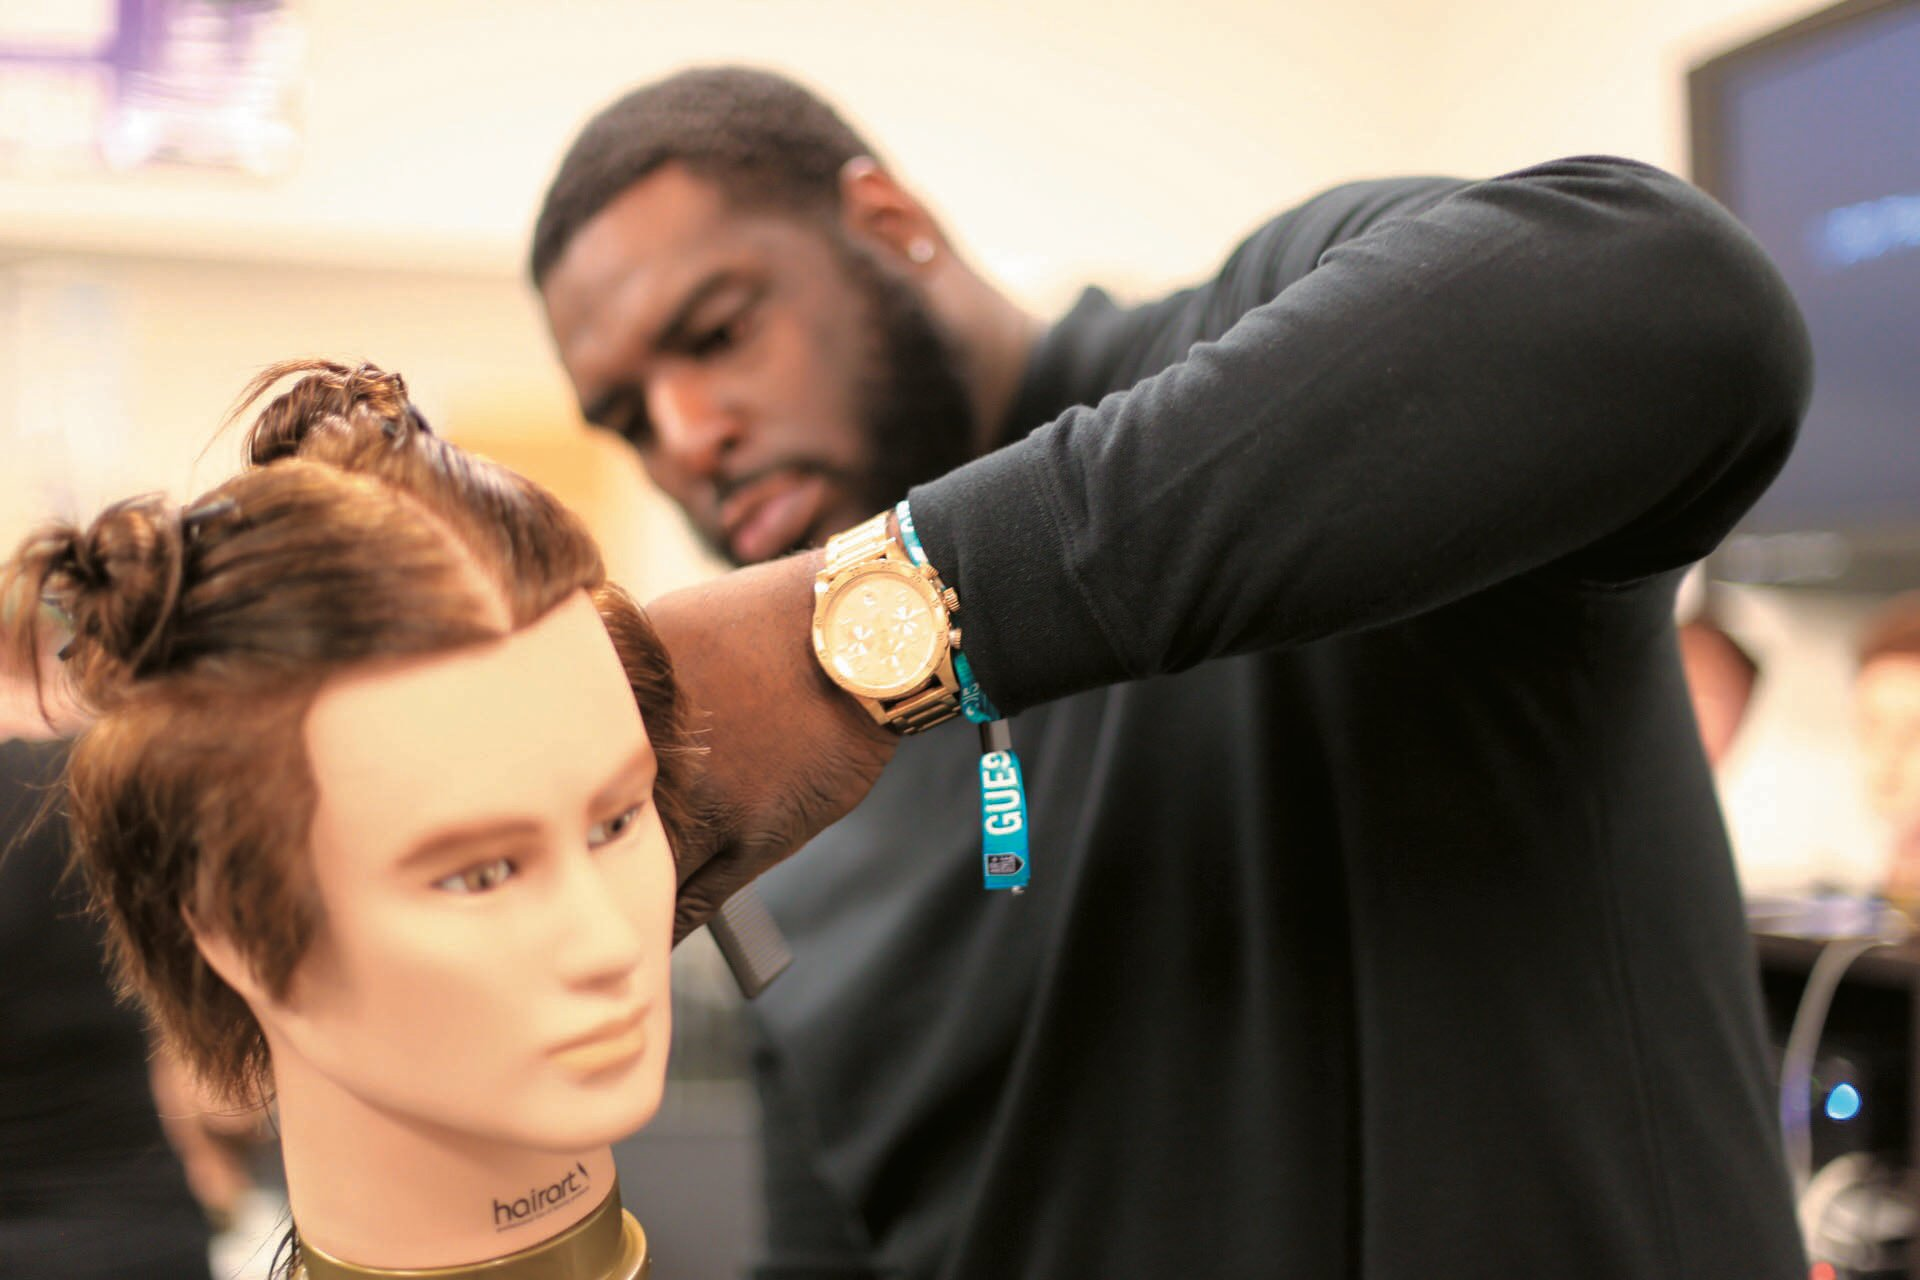 John Mosley demonstrating a technique on a mannequin head